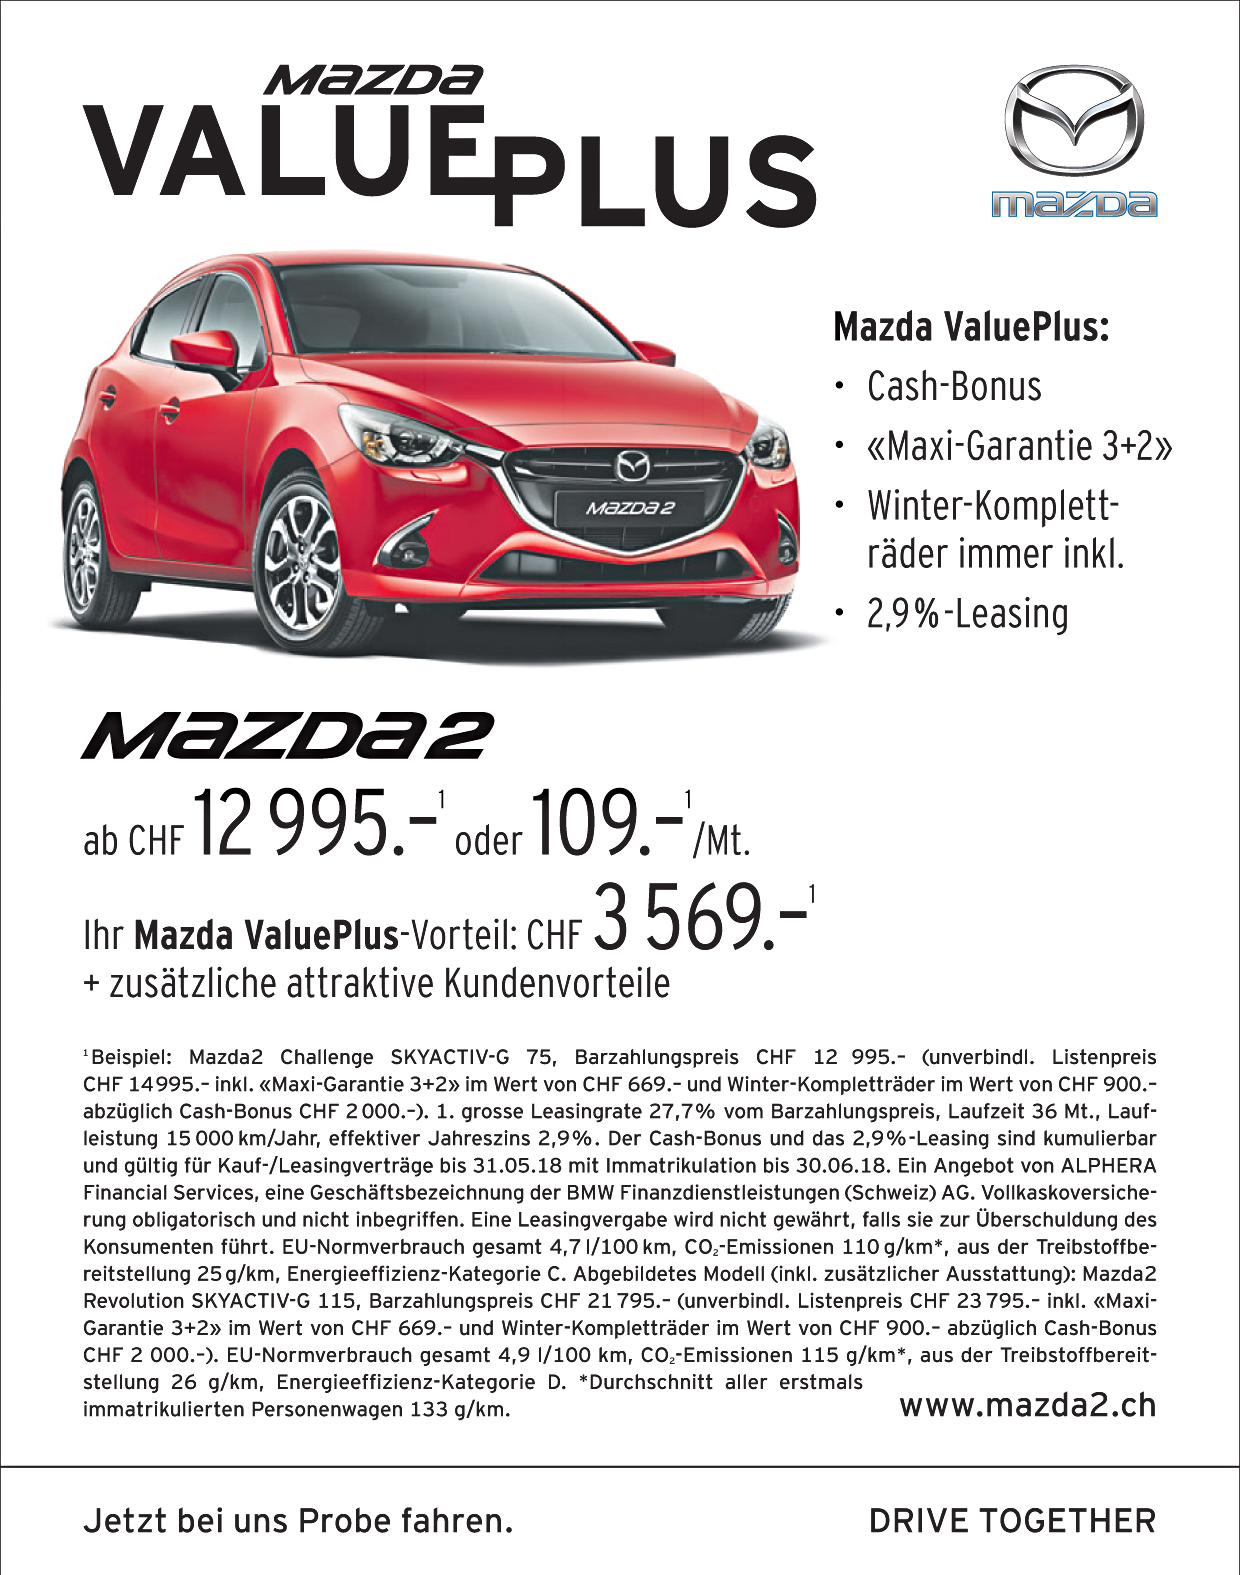 Mazda ValuePLUS bis 31.08.2018!